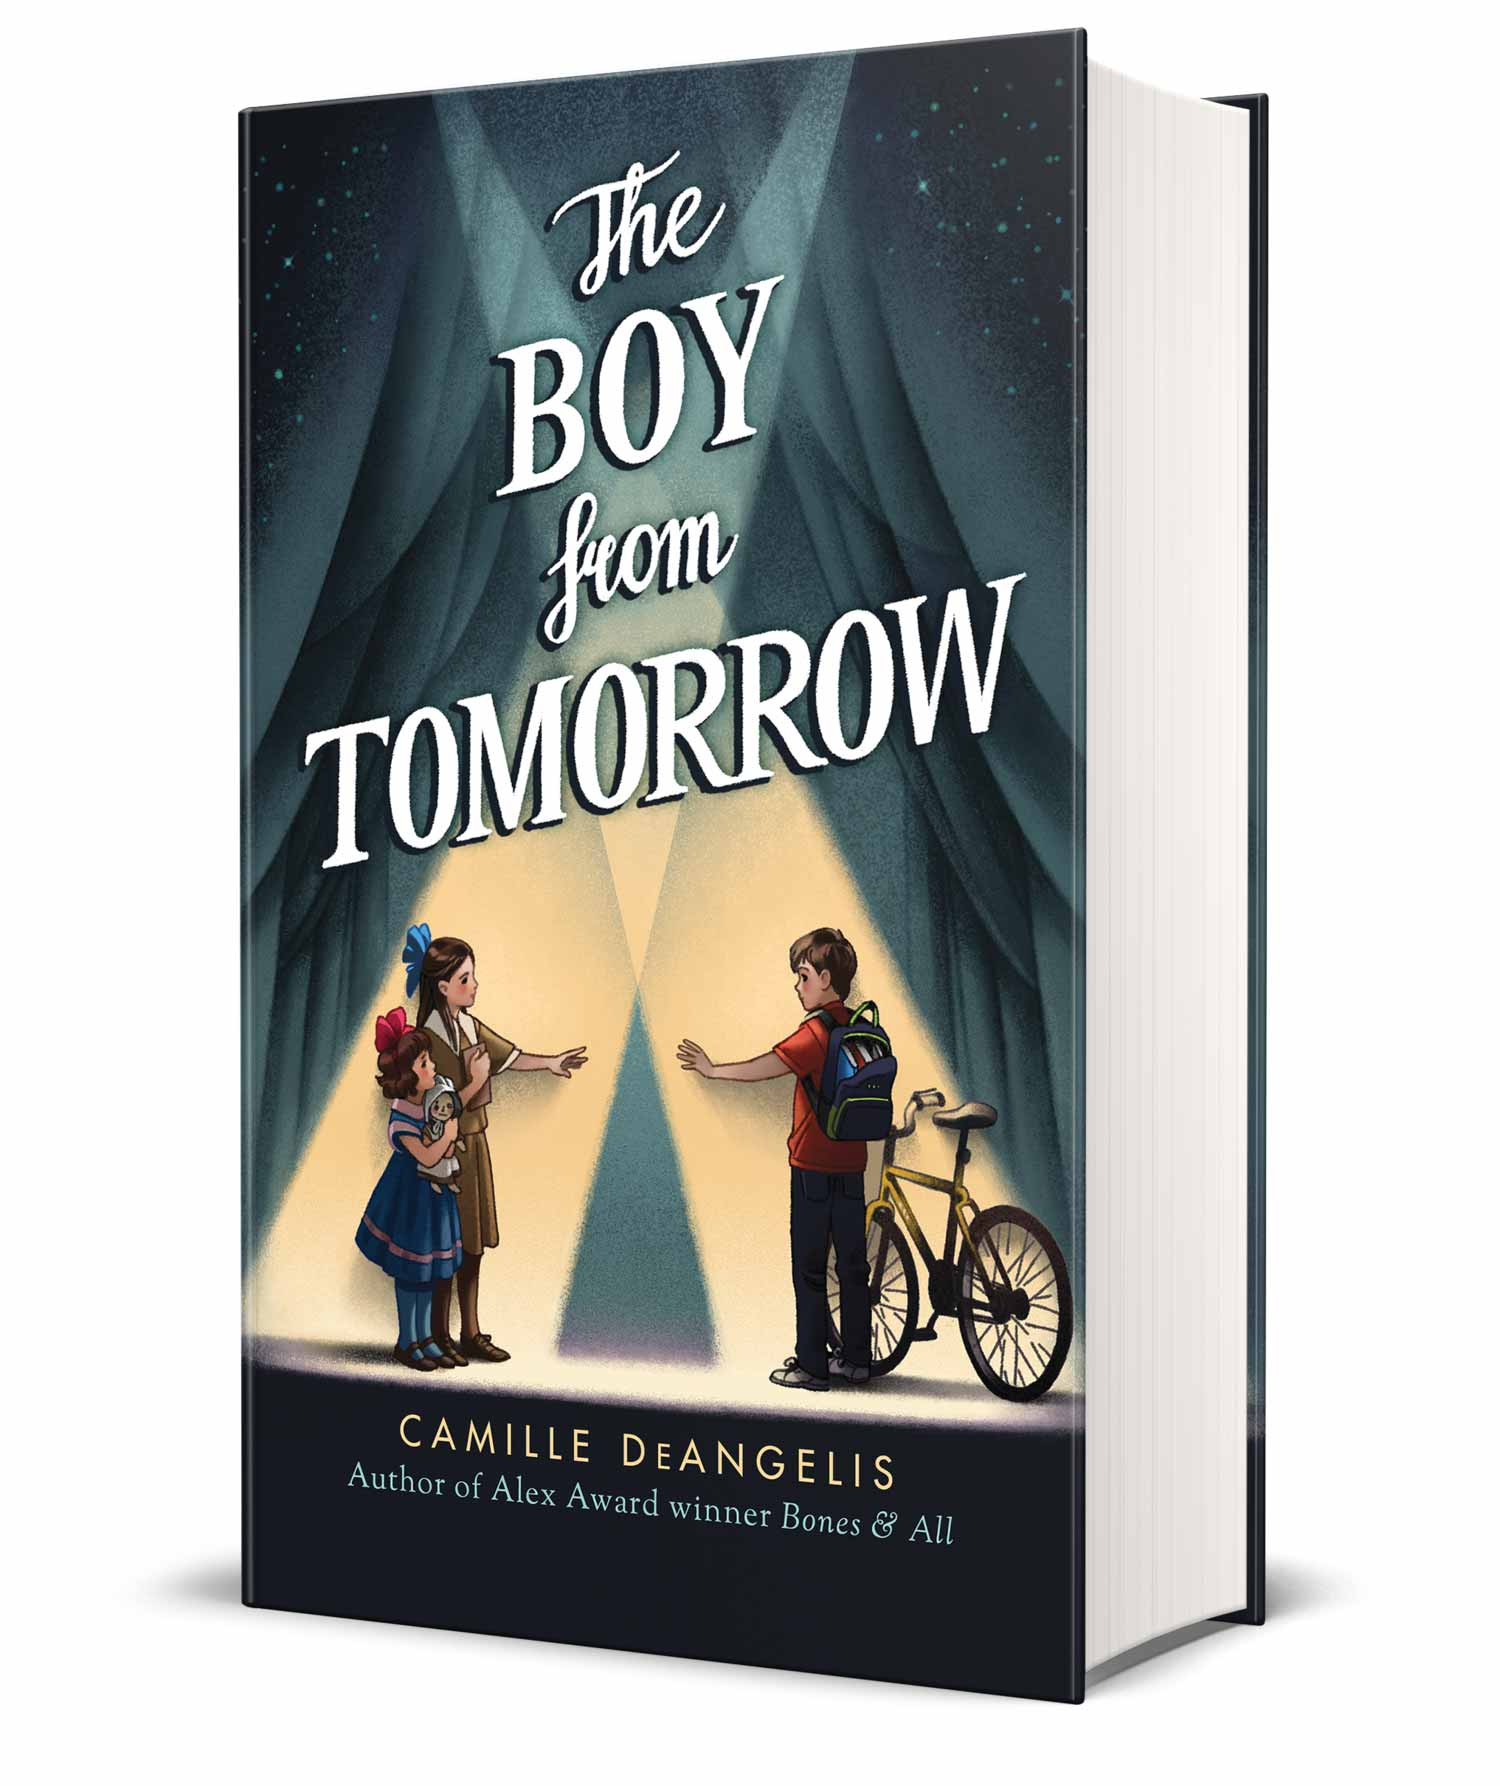 Josie and Alec are the best of friends, even chatting daily late into the night. Except Josie lives in 1915 and Alec lives in 2015. The Boy from Tomorrow by Camille DeAngelis is a cute children's story of best friends, even across time. #ChildrensBooks #Books #MassConsternation